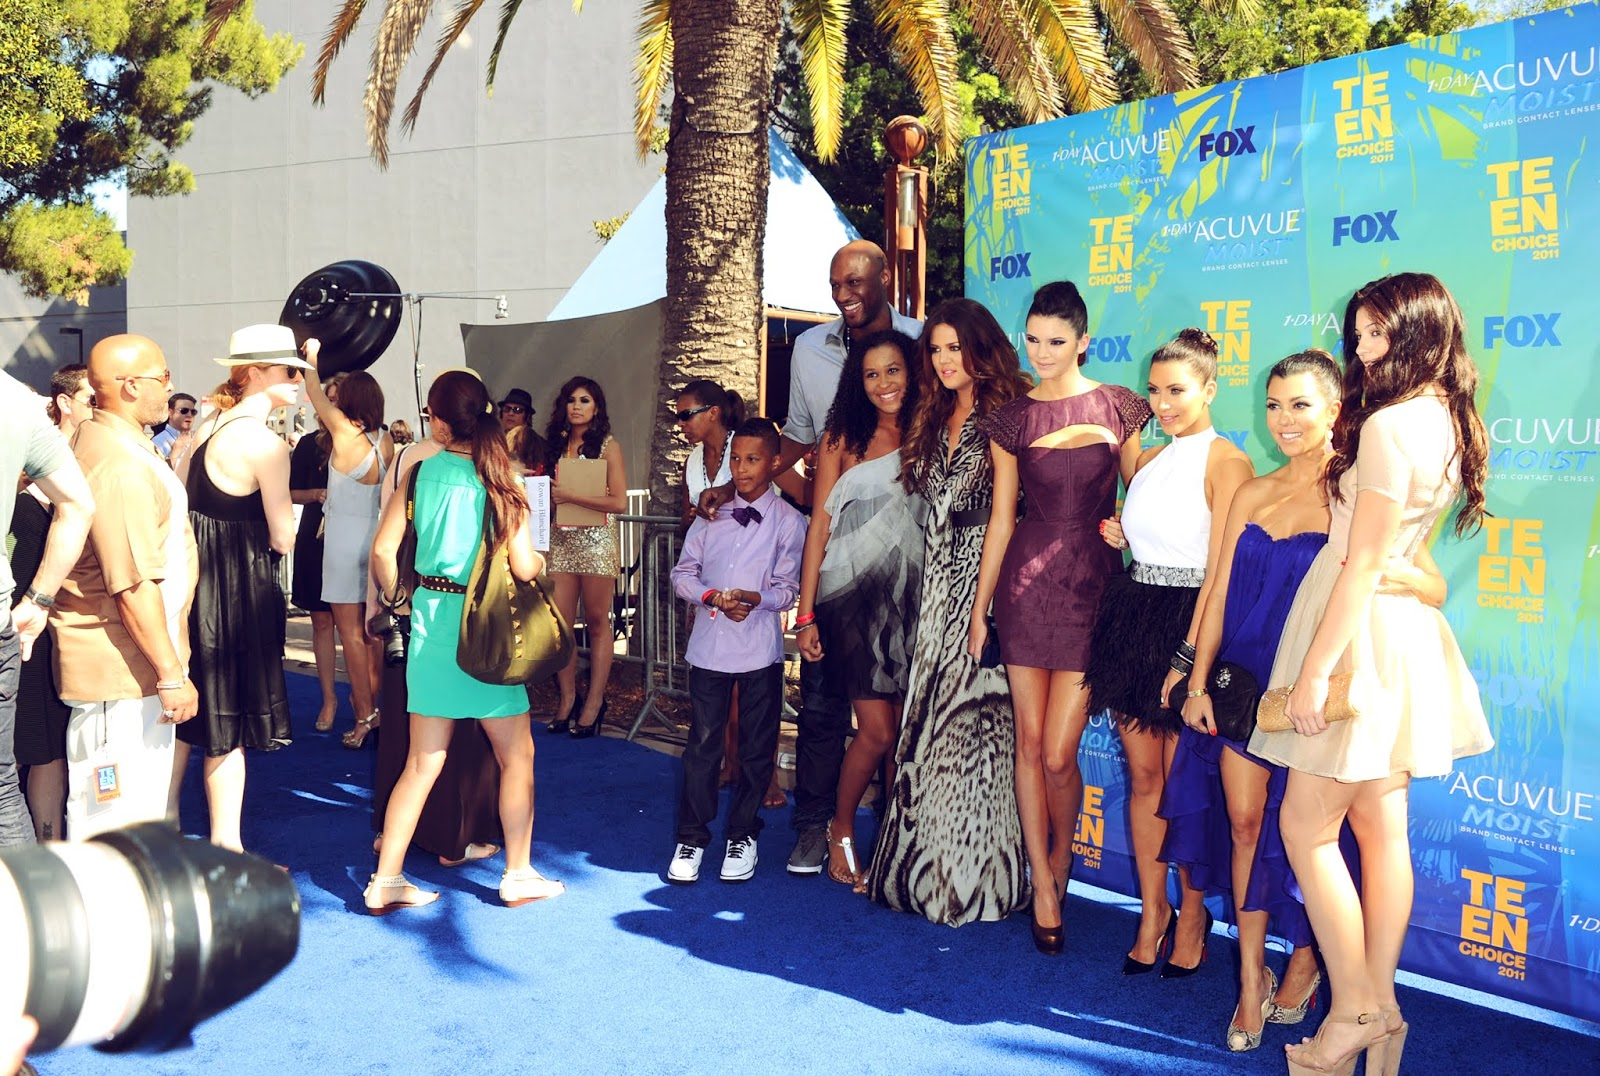 43 - Teen Choice Awards in August 11, 2011